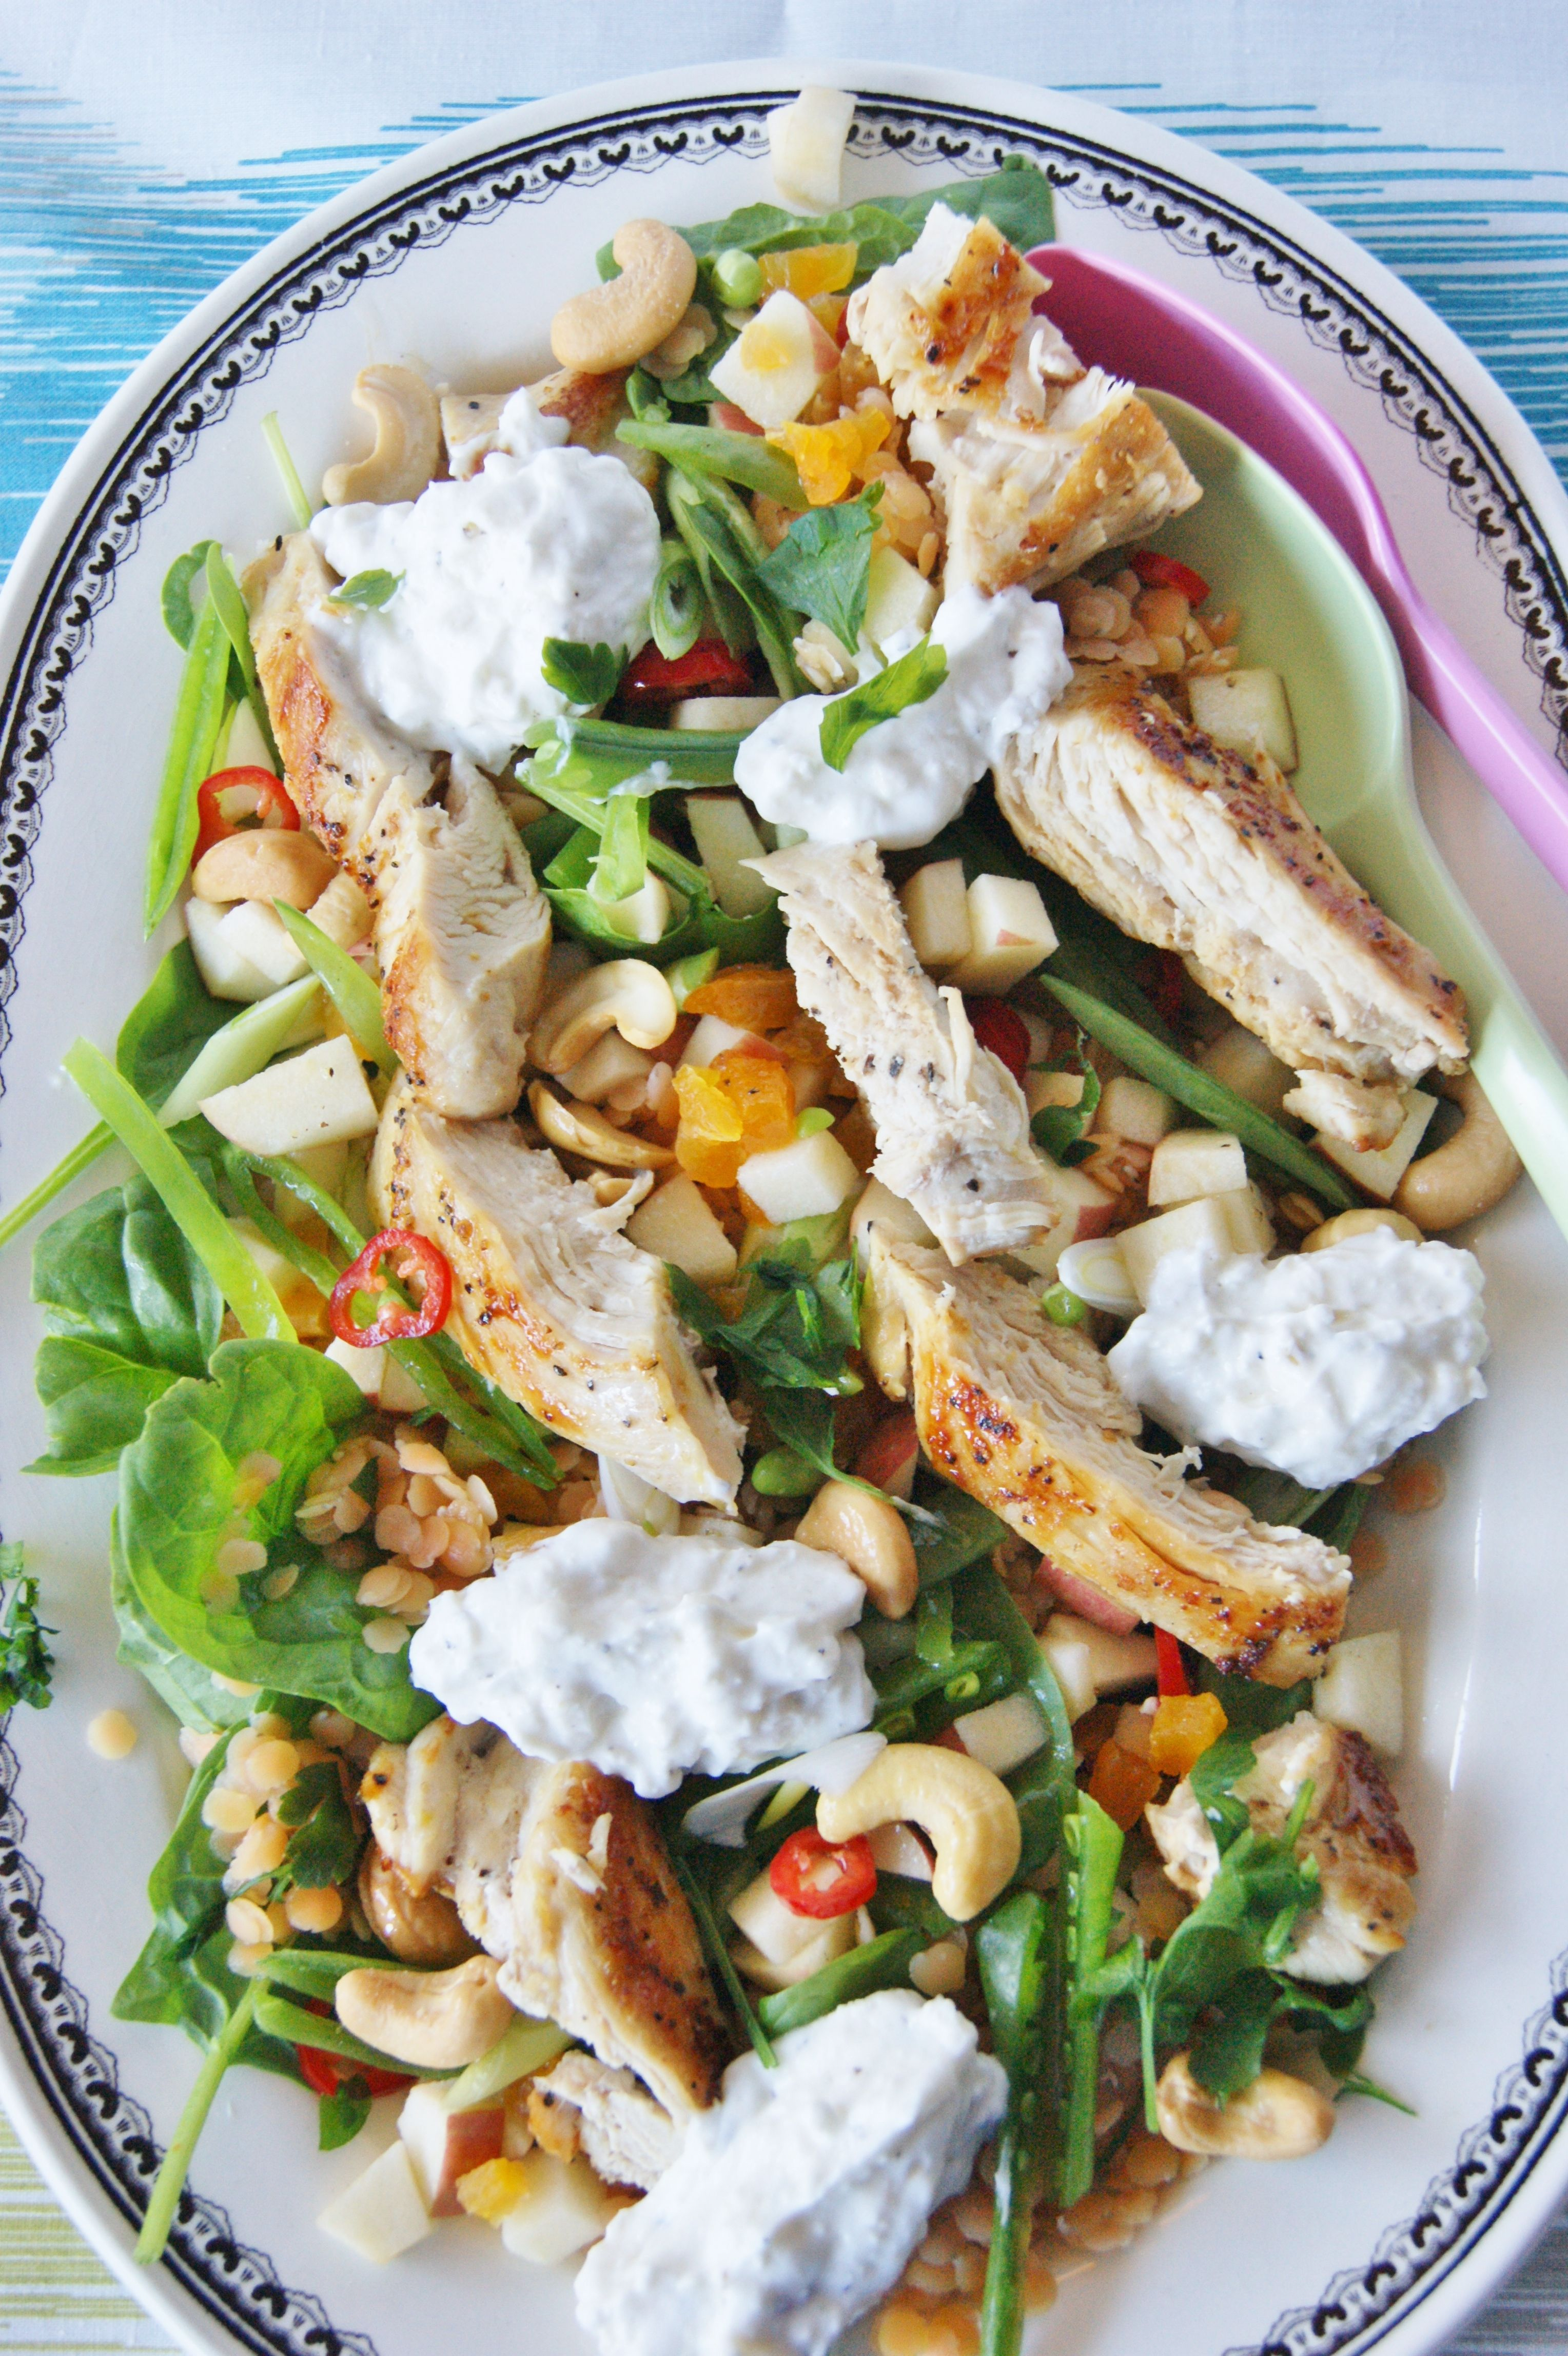 Chicken salad with lentils and feta cheese cream/ myfoodpassion.net